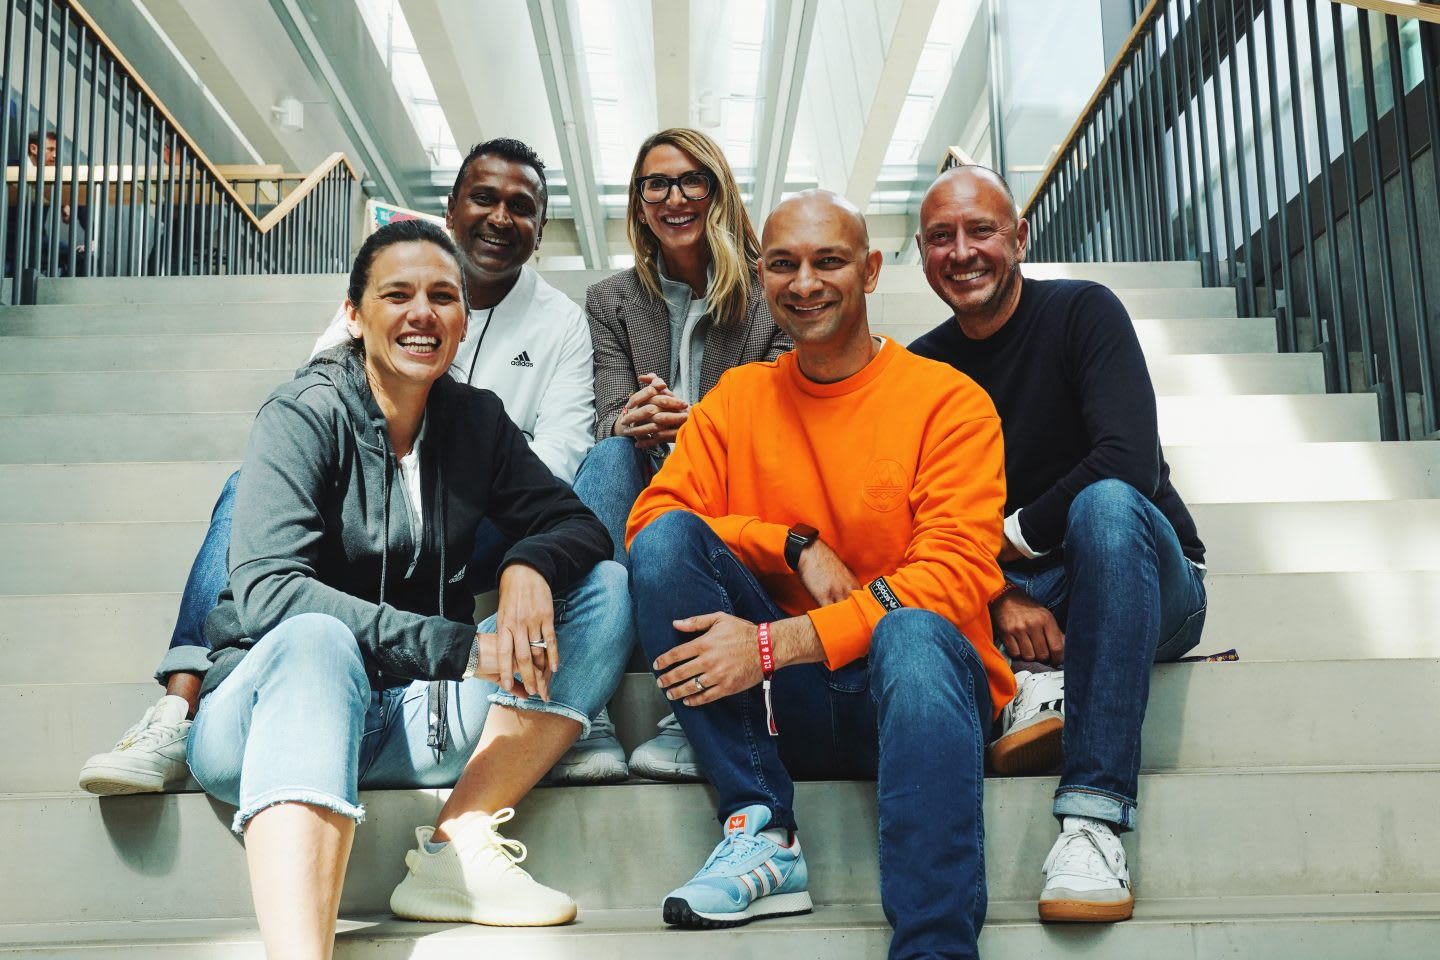 A team of diverse men and women sitting on steps smiling, teamwork, diversity, workplace, culture, colleagues, adidas